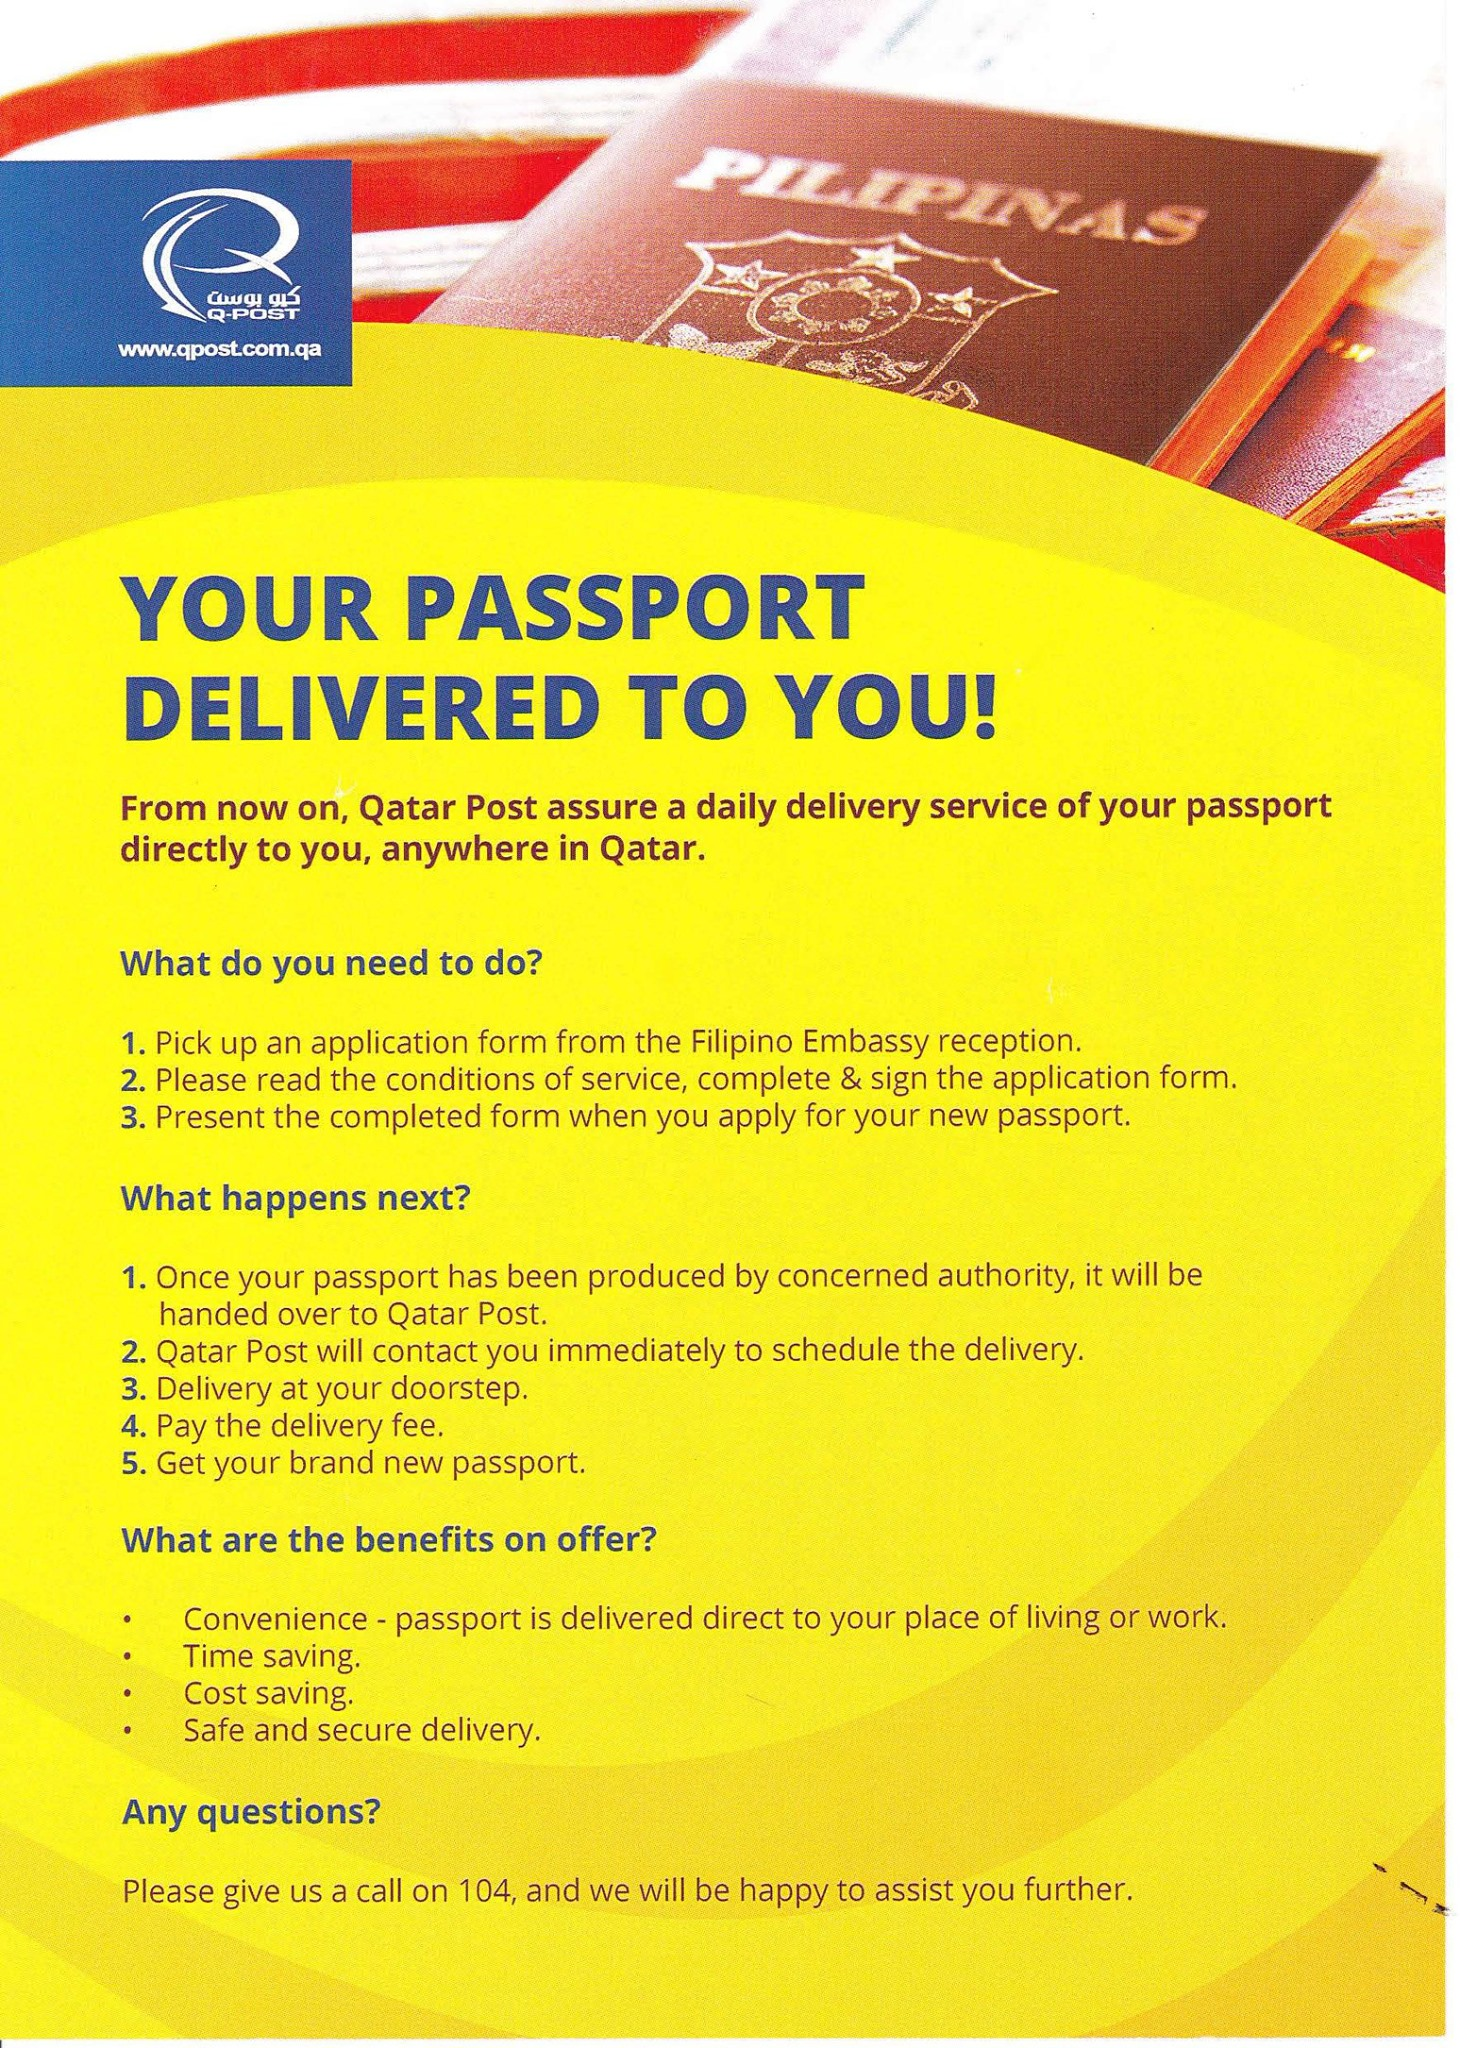 philippine passport delivery qatar